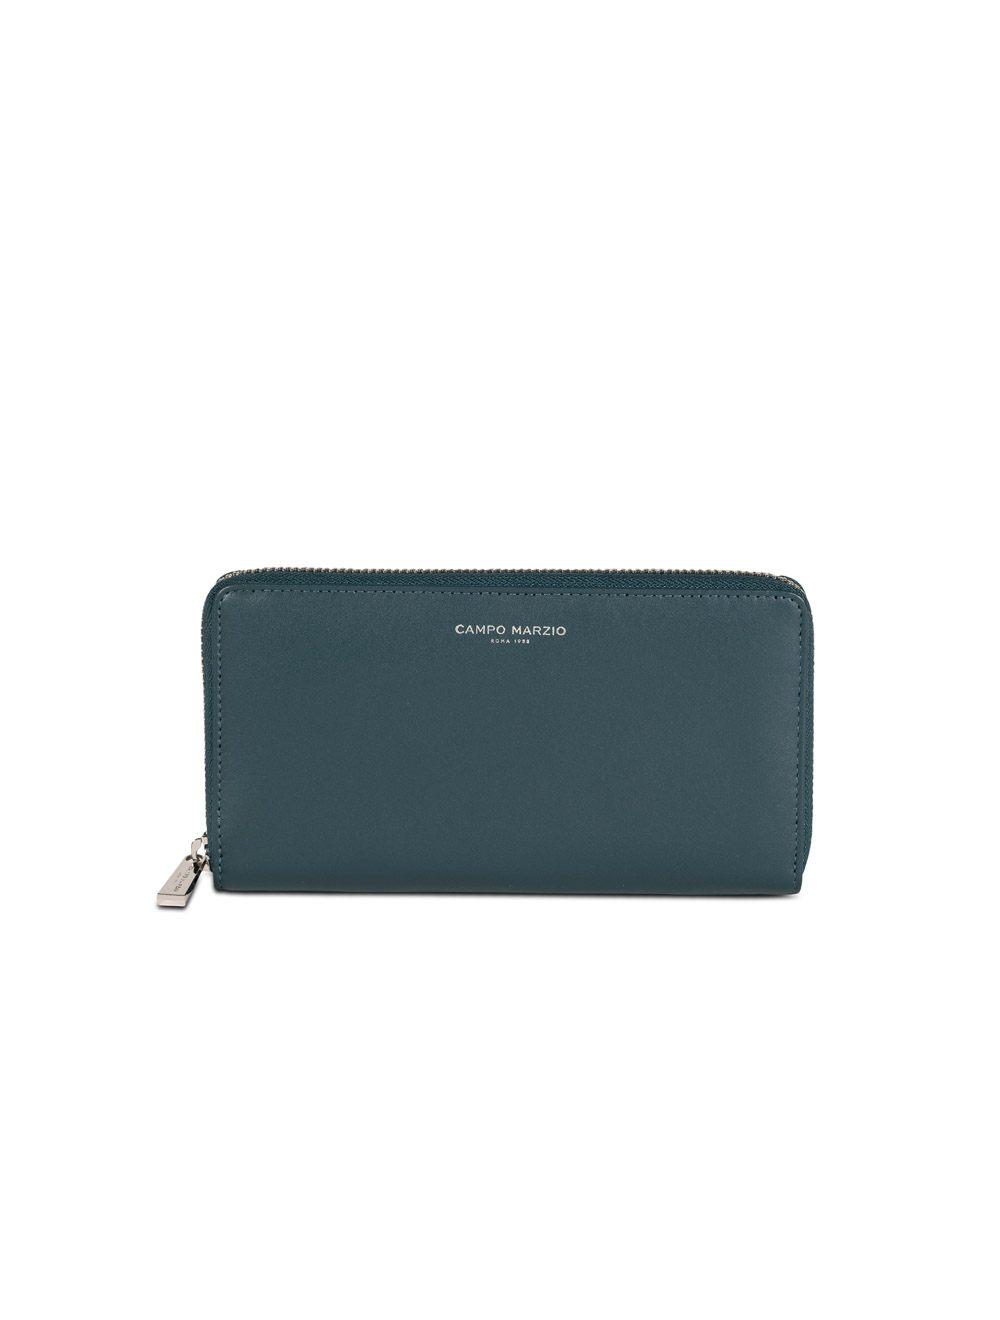 Purse Columbia - Turquoise